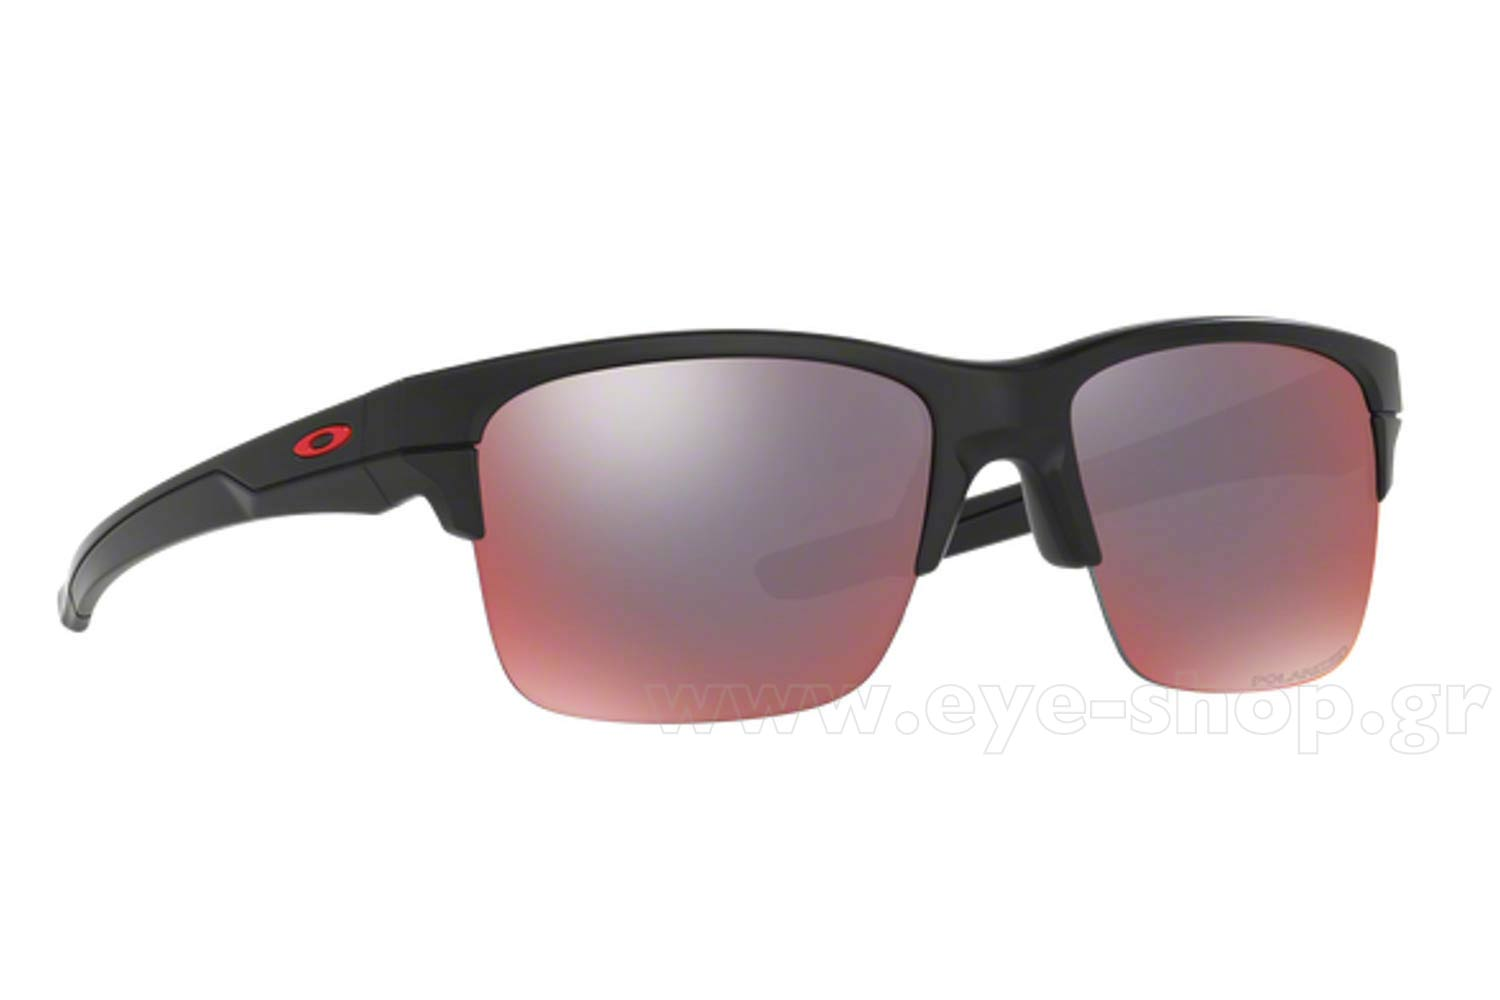 3a3fab39524 SUNGLASSES Oakley THINLINK 9316 07 Torch Iridium Polarized